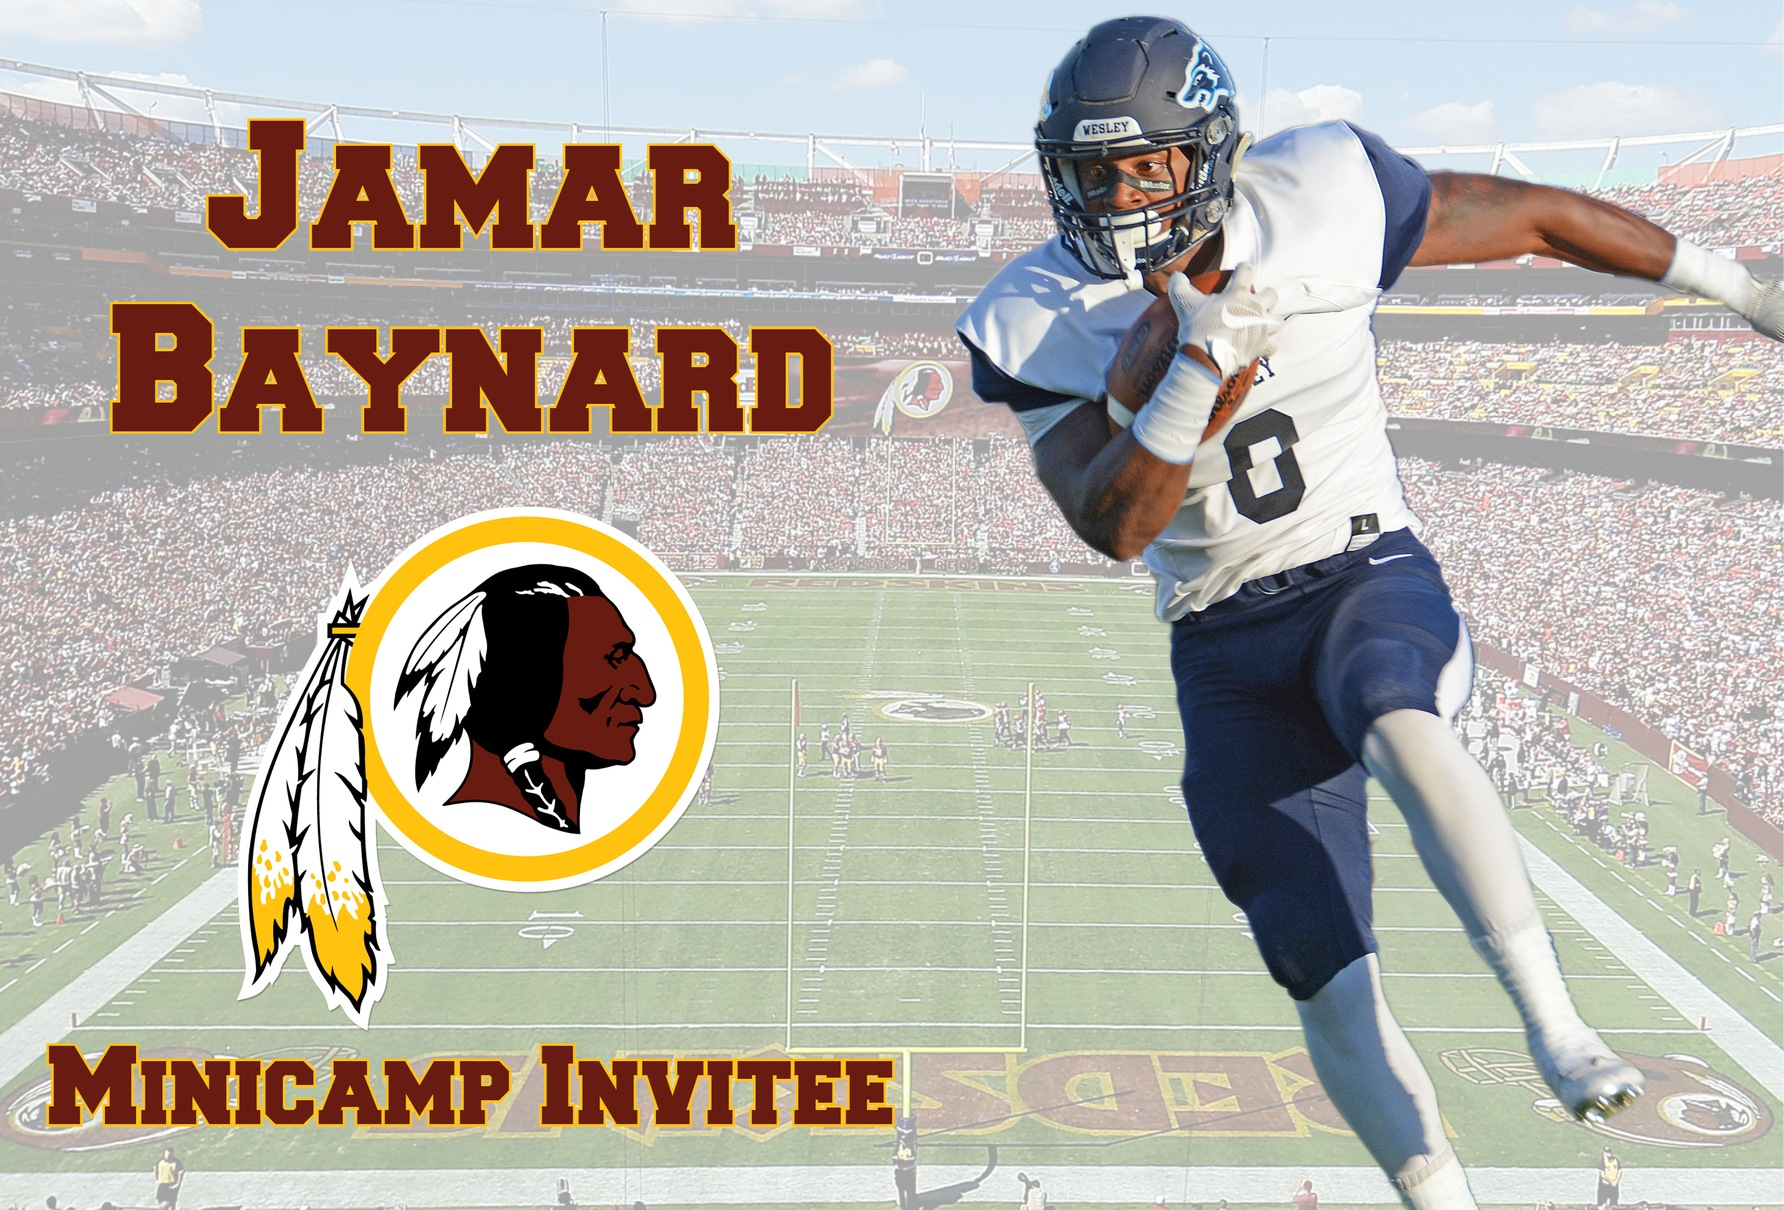 Baynard invited to Redskins minicamp